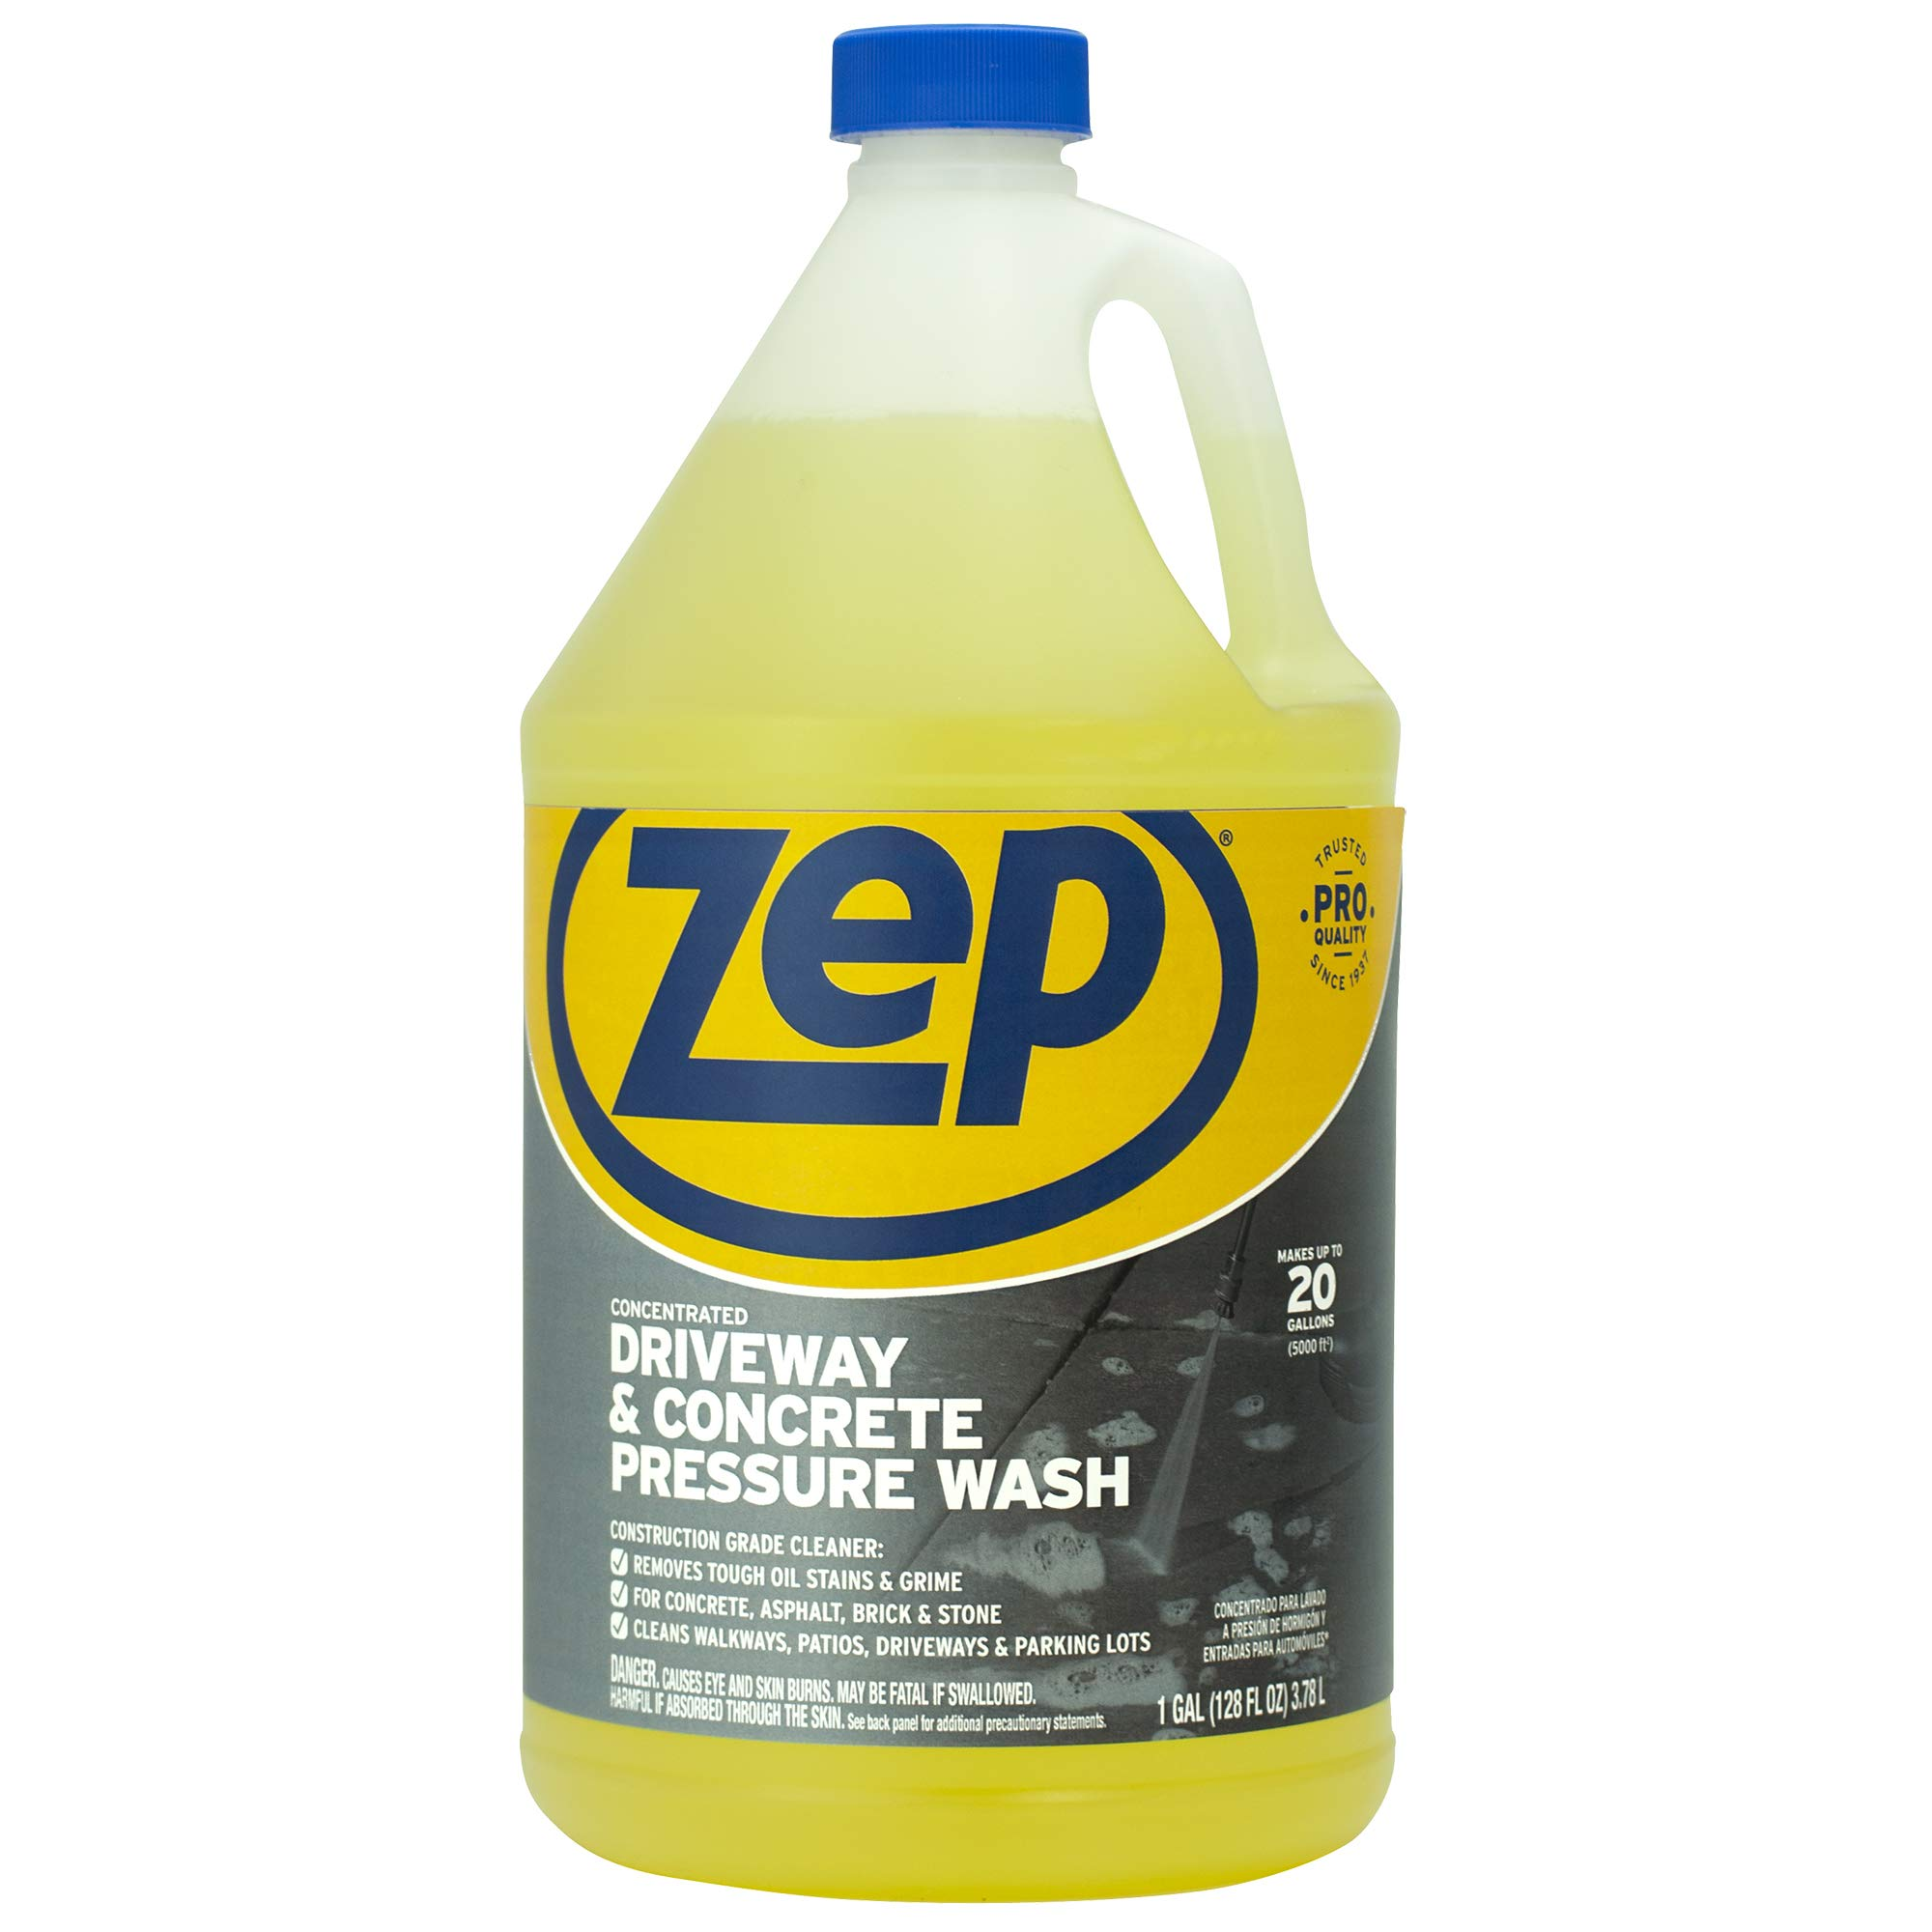 Zep Driveway and Concrete Pressure Wash Cleaner Concentrate 128 Ounce ZUBMC